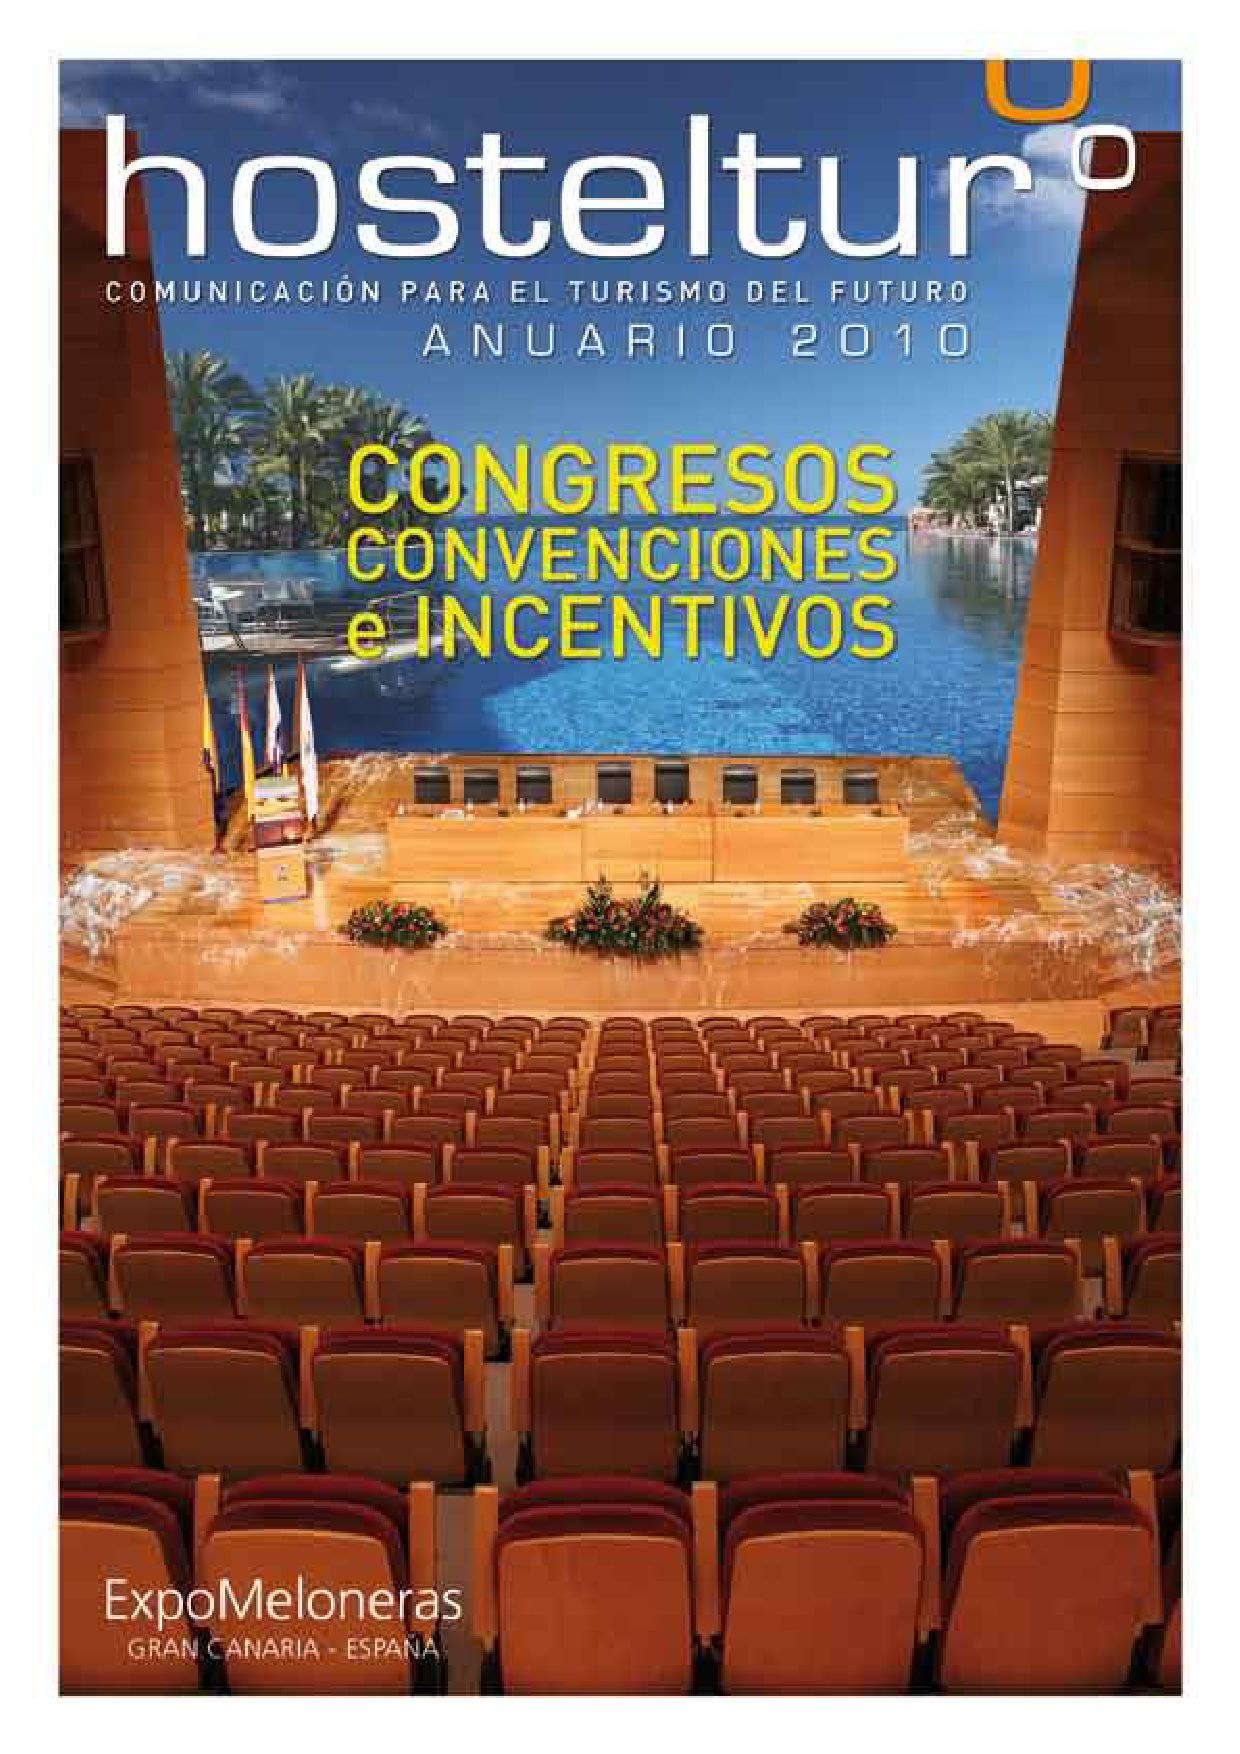 Especial Congresos Hosteltur 2010 By Hosteltur 2010 Issuu